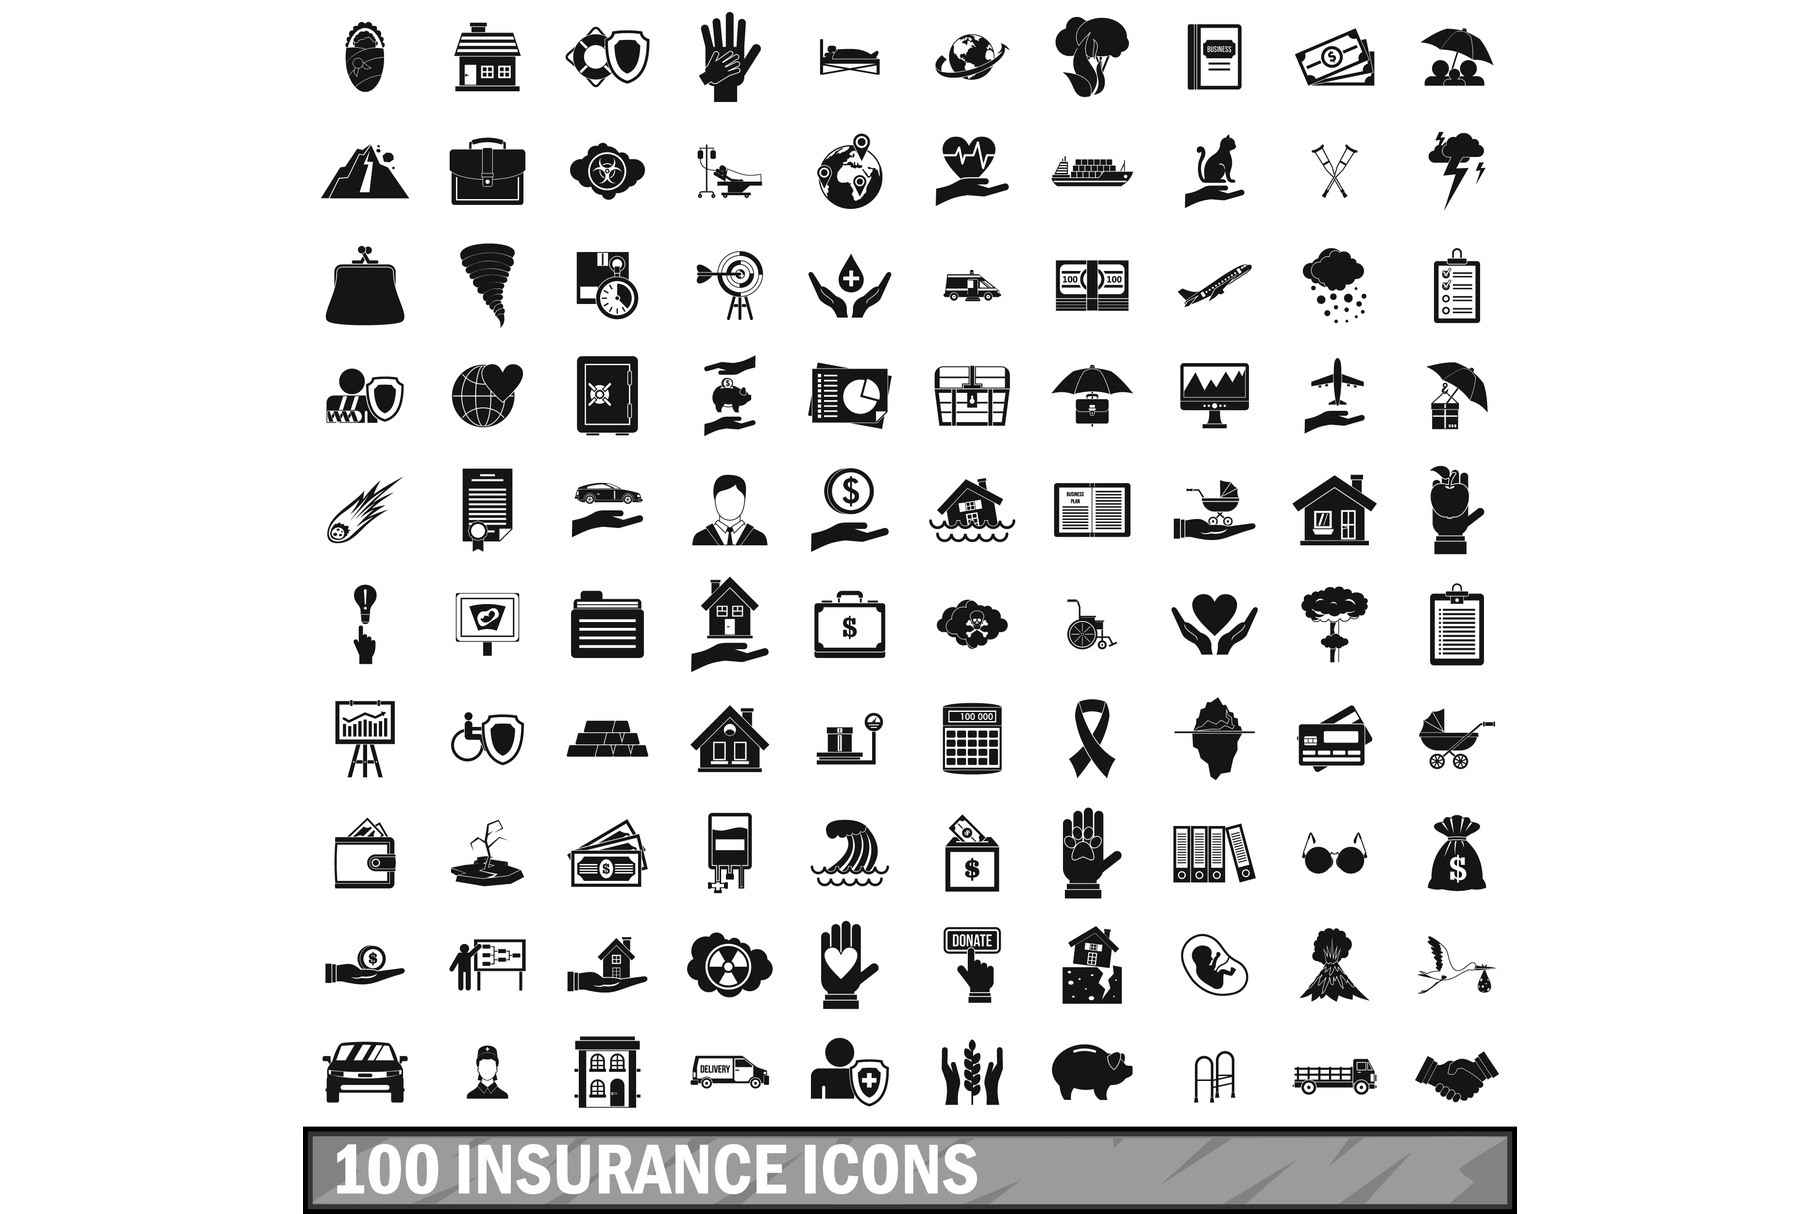 100 insurance icons set, simple style example image 1